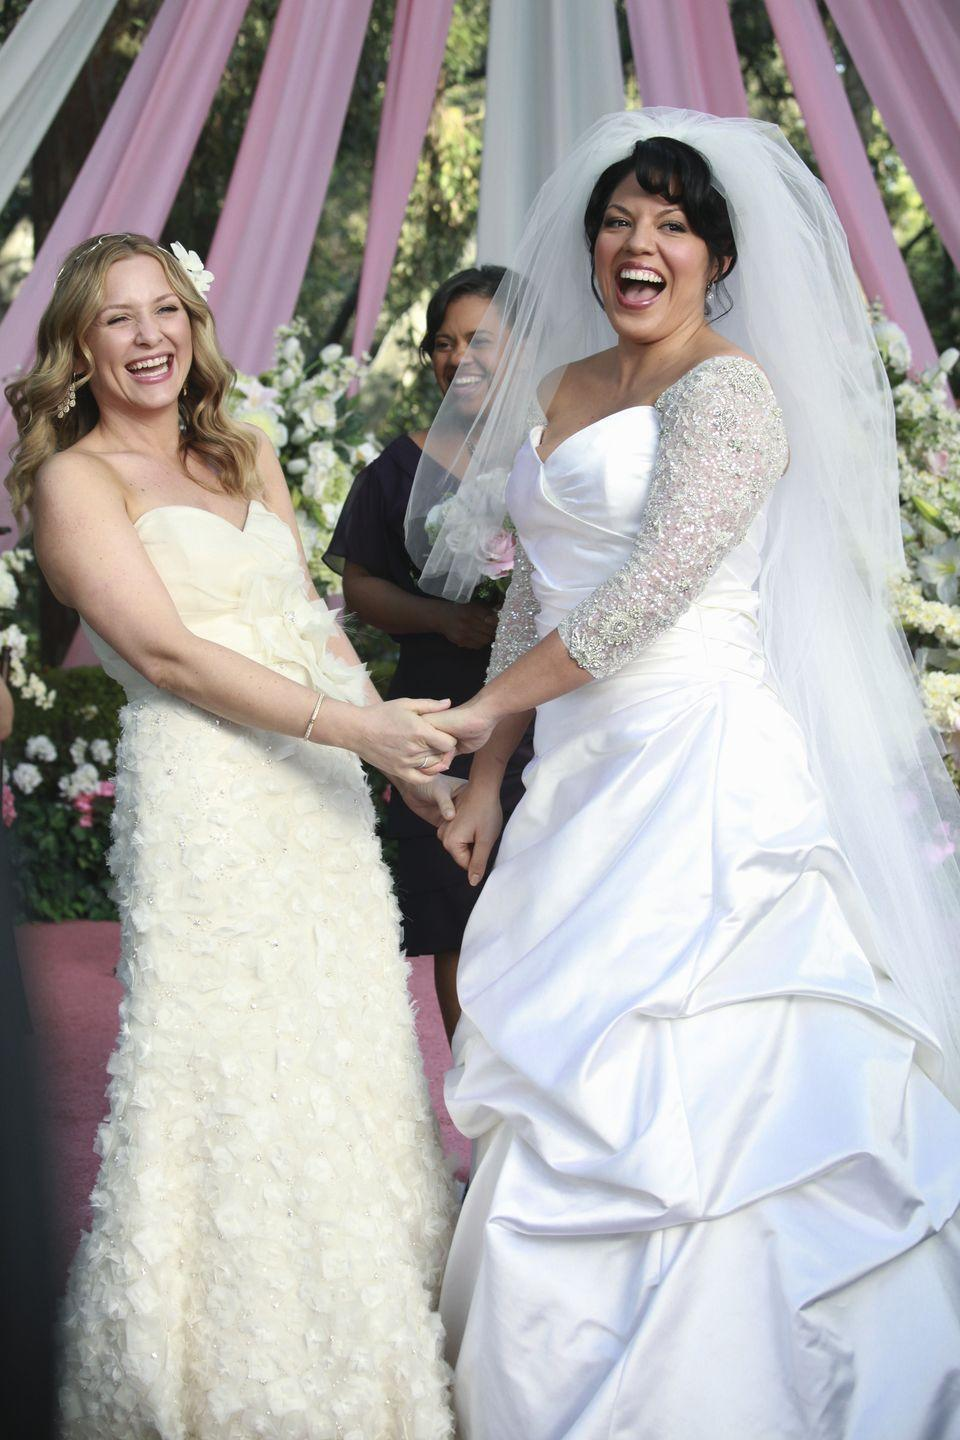 <p>Both brides looked stunning in their own unique wedding dresses on <em>Grey's Anatomy </em>in season 7. Arizona wore an off-white gown with a sweetheart neck and appliquéd skirt, while Callie wore a satin princess gown with embellished sleeves. </p>